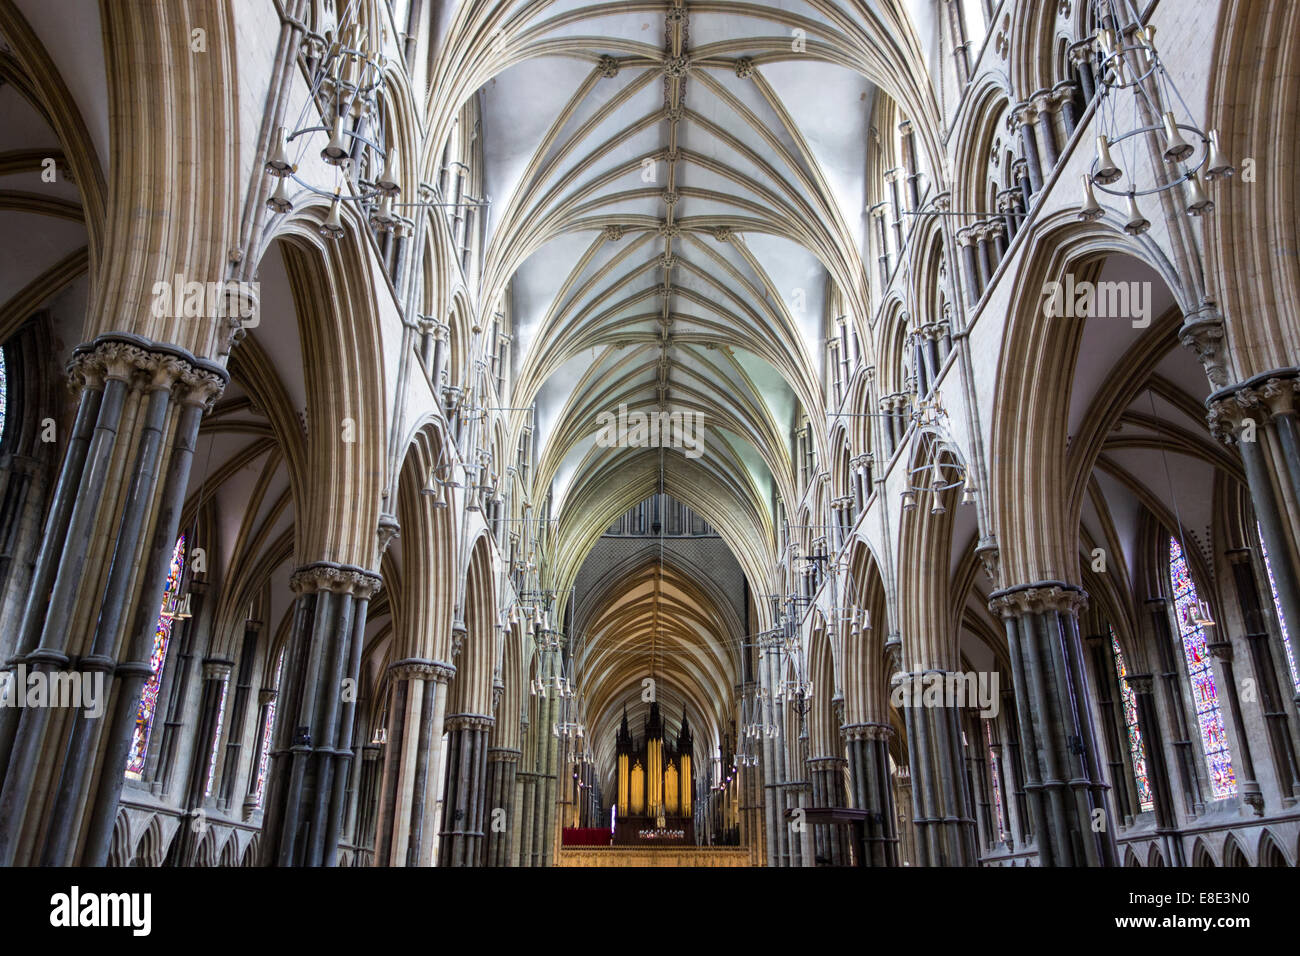 Thirteenth Century Nave Of Lincoln Cathedral Early English Gothic Style In Lincs East Midlands United Kingdom